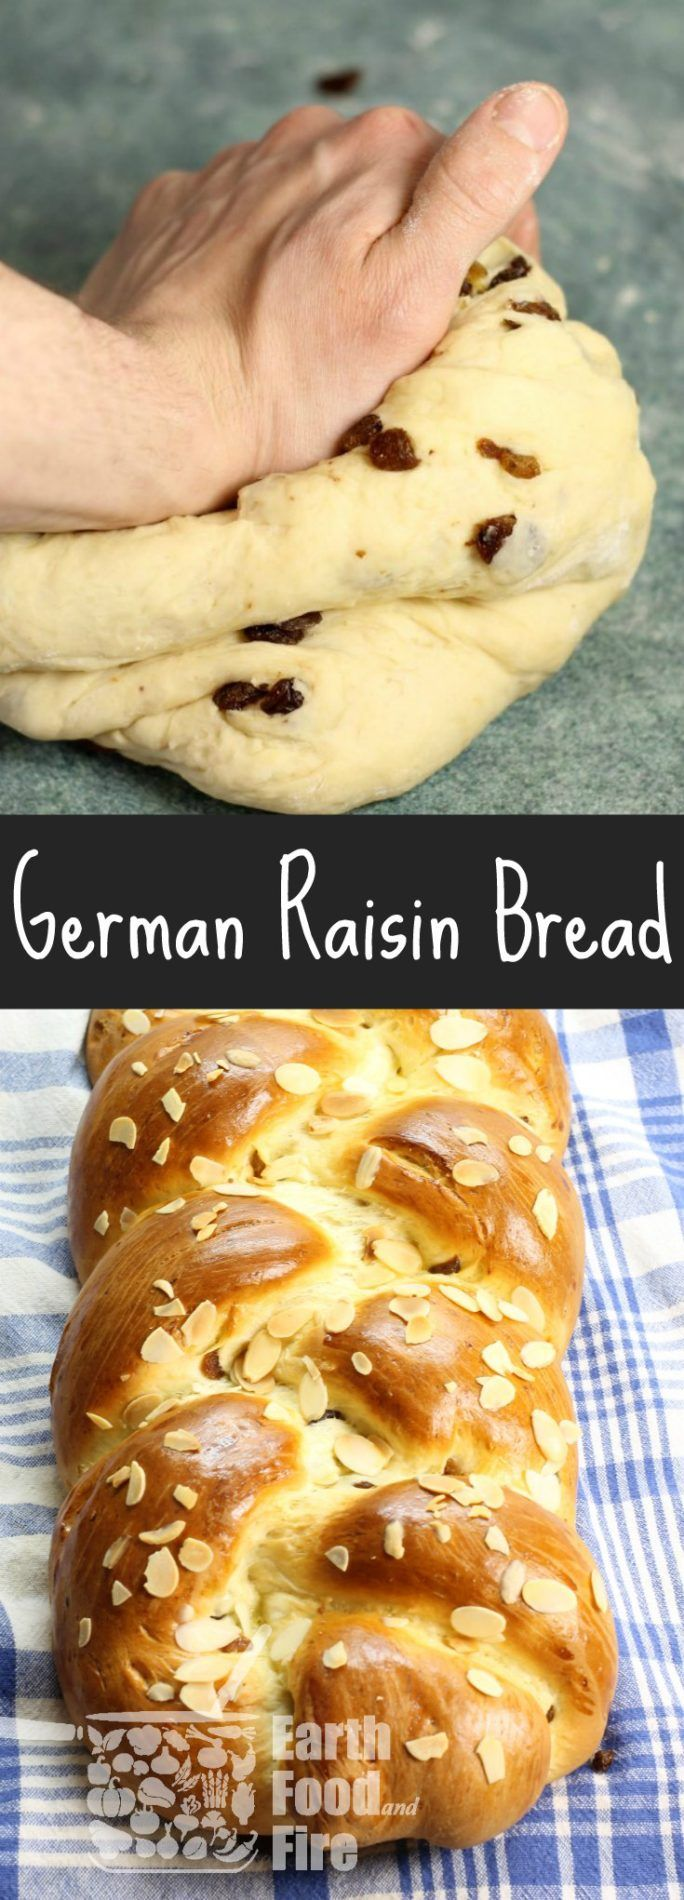 "A deliciously soft Raisin Bread (Rosinenbrot) from Luisa Weiss' ""Classic German Baking"". The perfect loaf of bread to serve for breakfast on Easter! @wednesdaychef via @earthfoodfire"